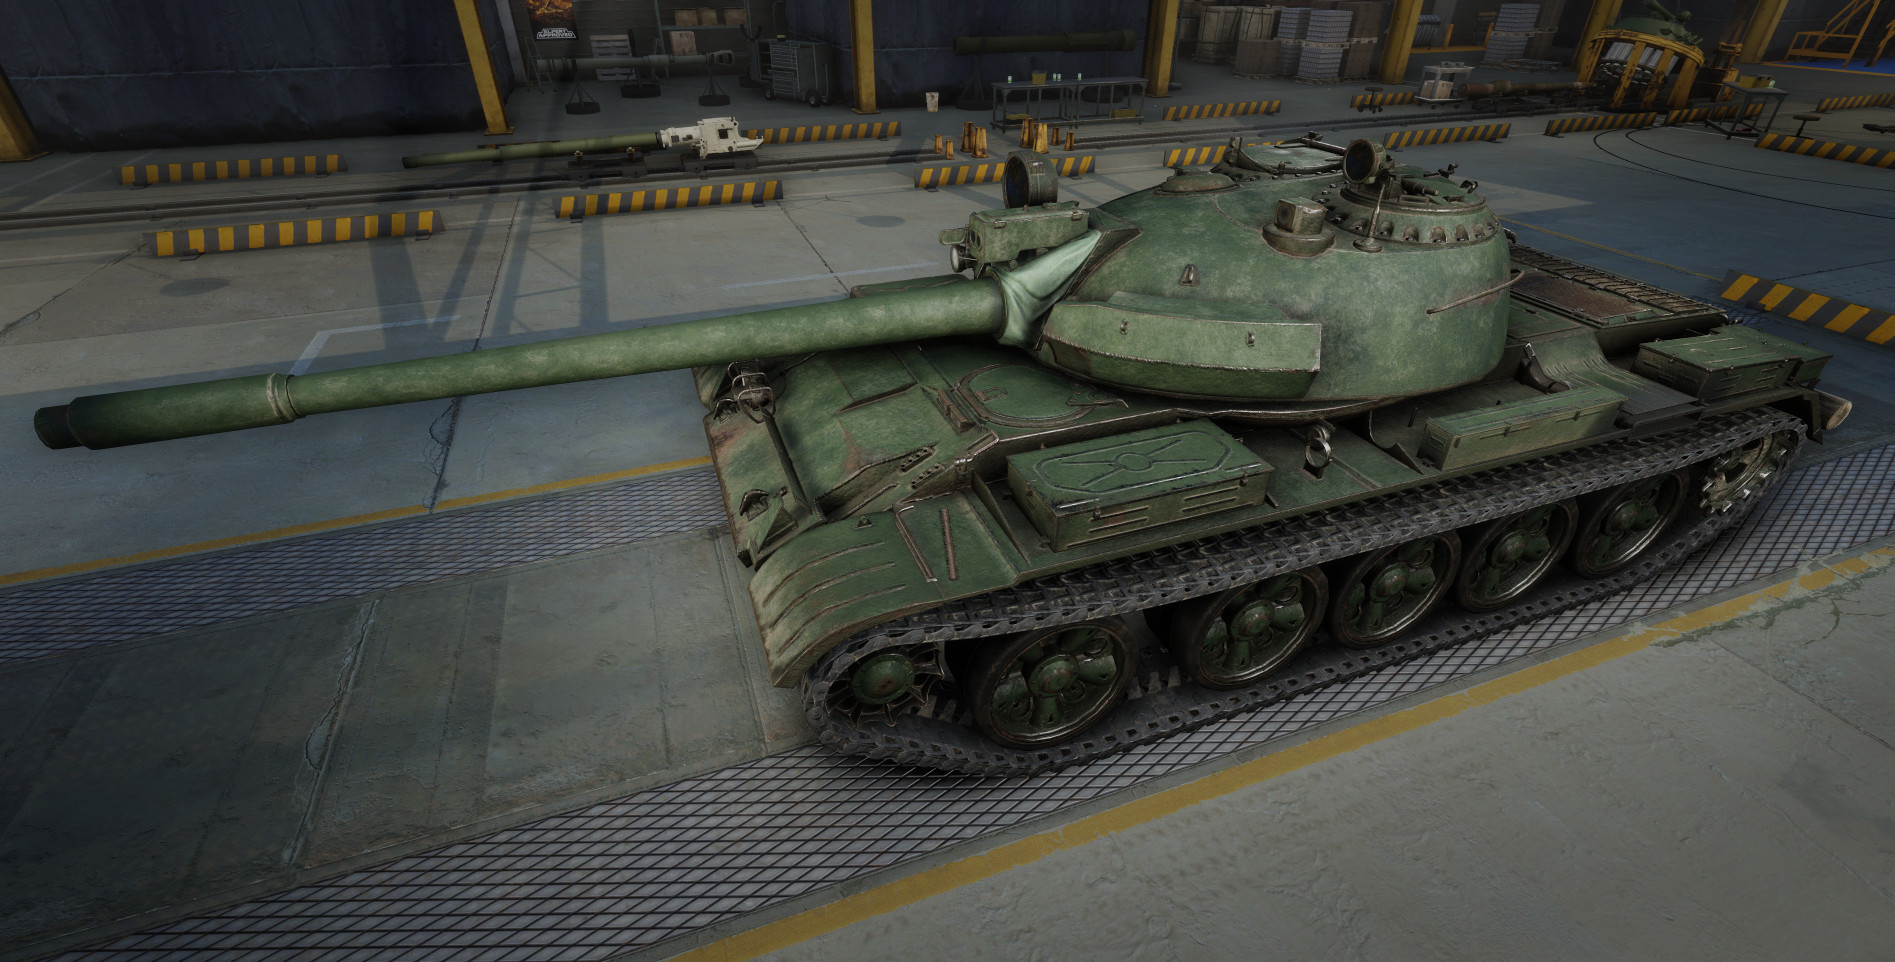 Brx boyles t 55 variant screens 04